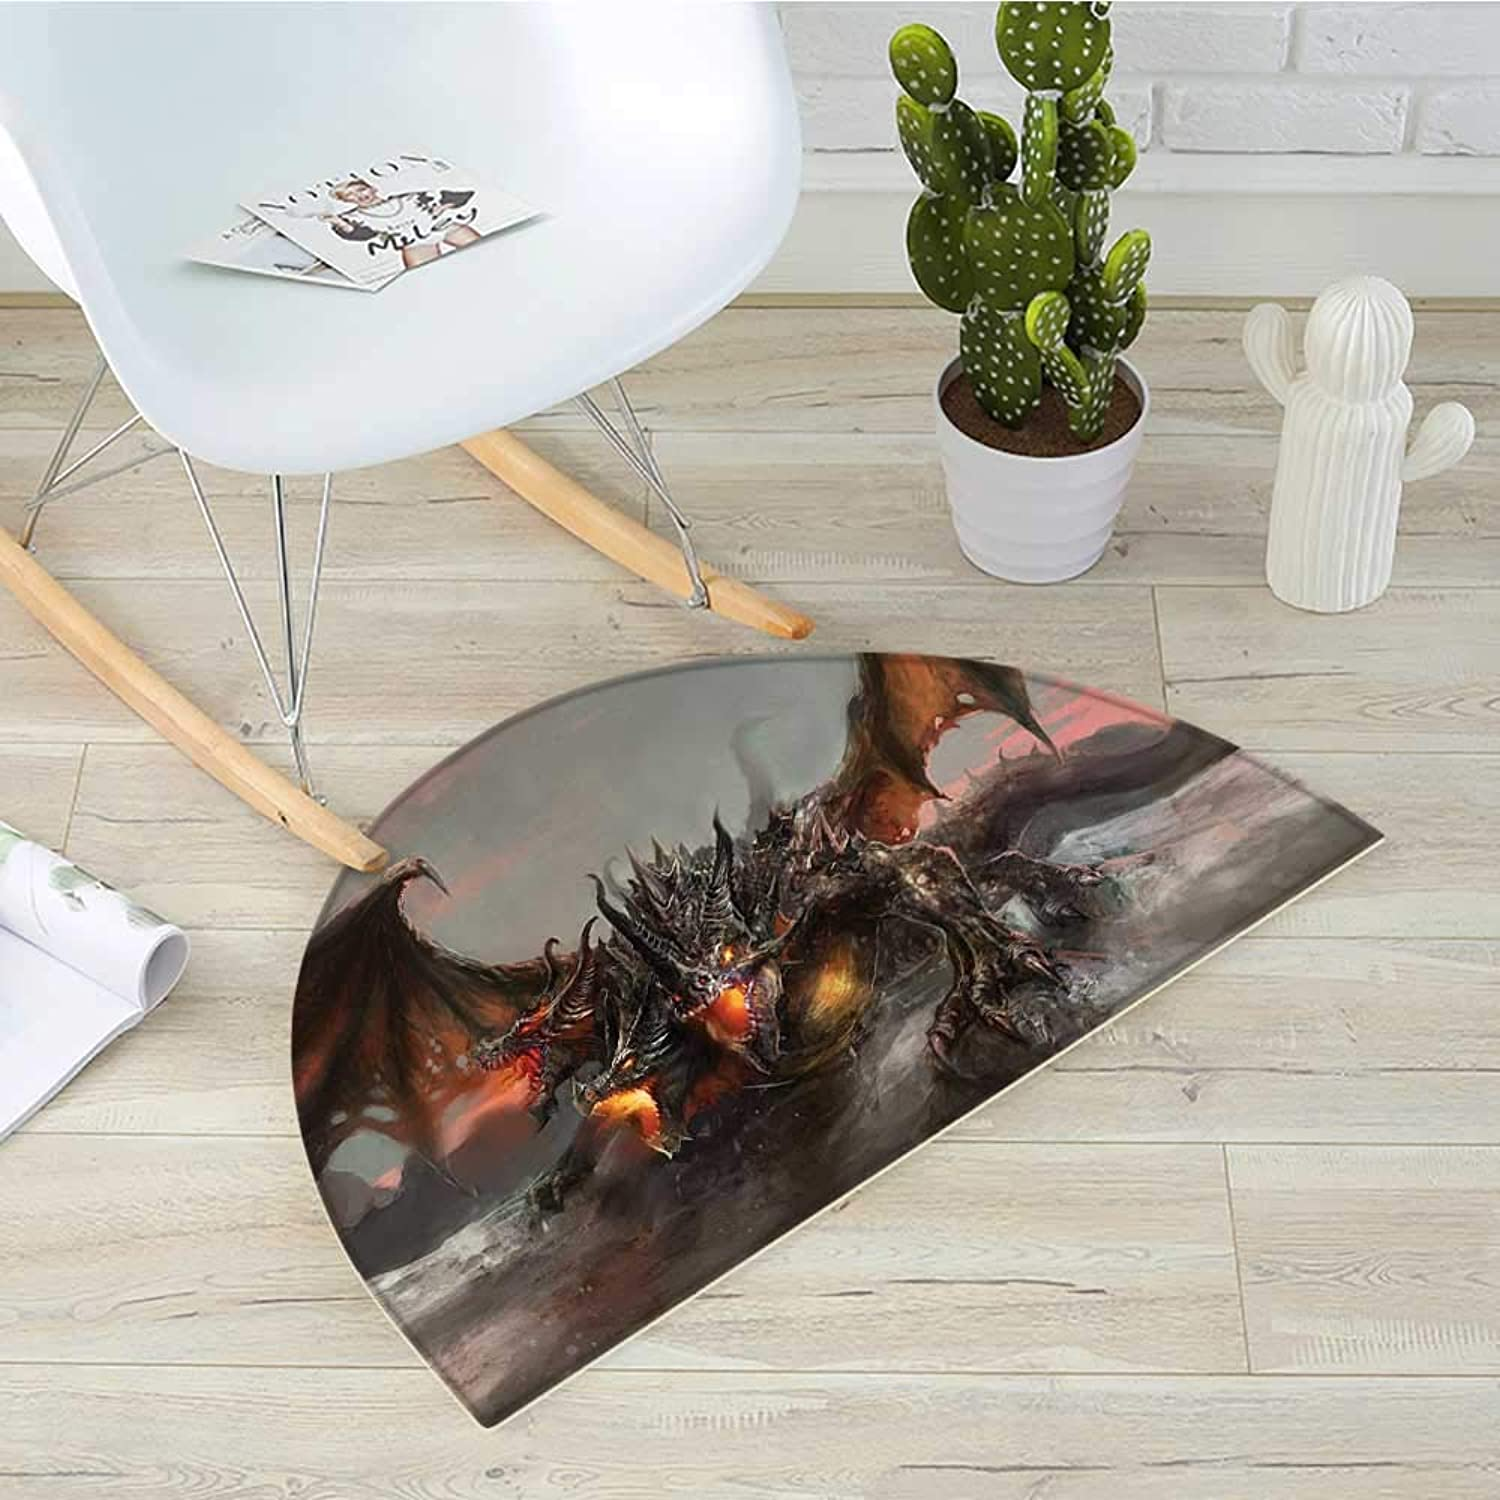 Fantasy World Semicircular CushionIllustration of Three Headed Fire Breathing Dragon Large Monster Gothic Theme Entry Door Mat H 43.3  xD 64.9  Brown Grey